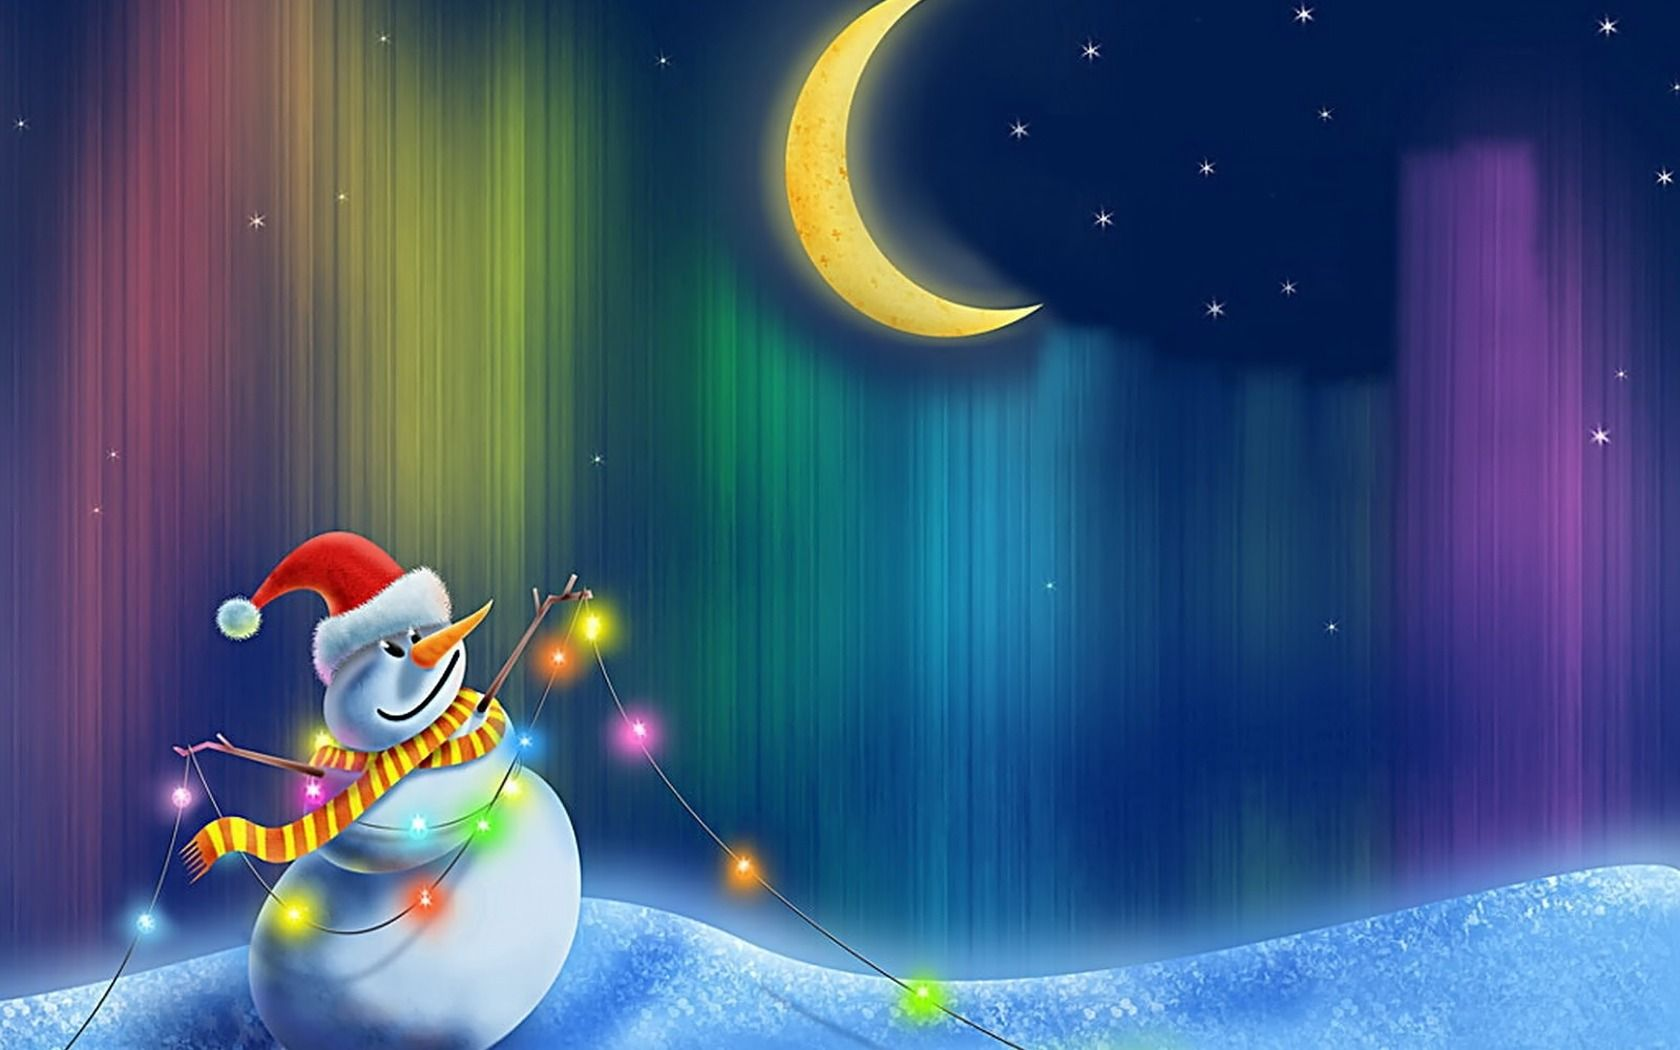 Free Wallpaper Screen Savers Free Christmas Wallpapers And